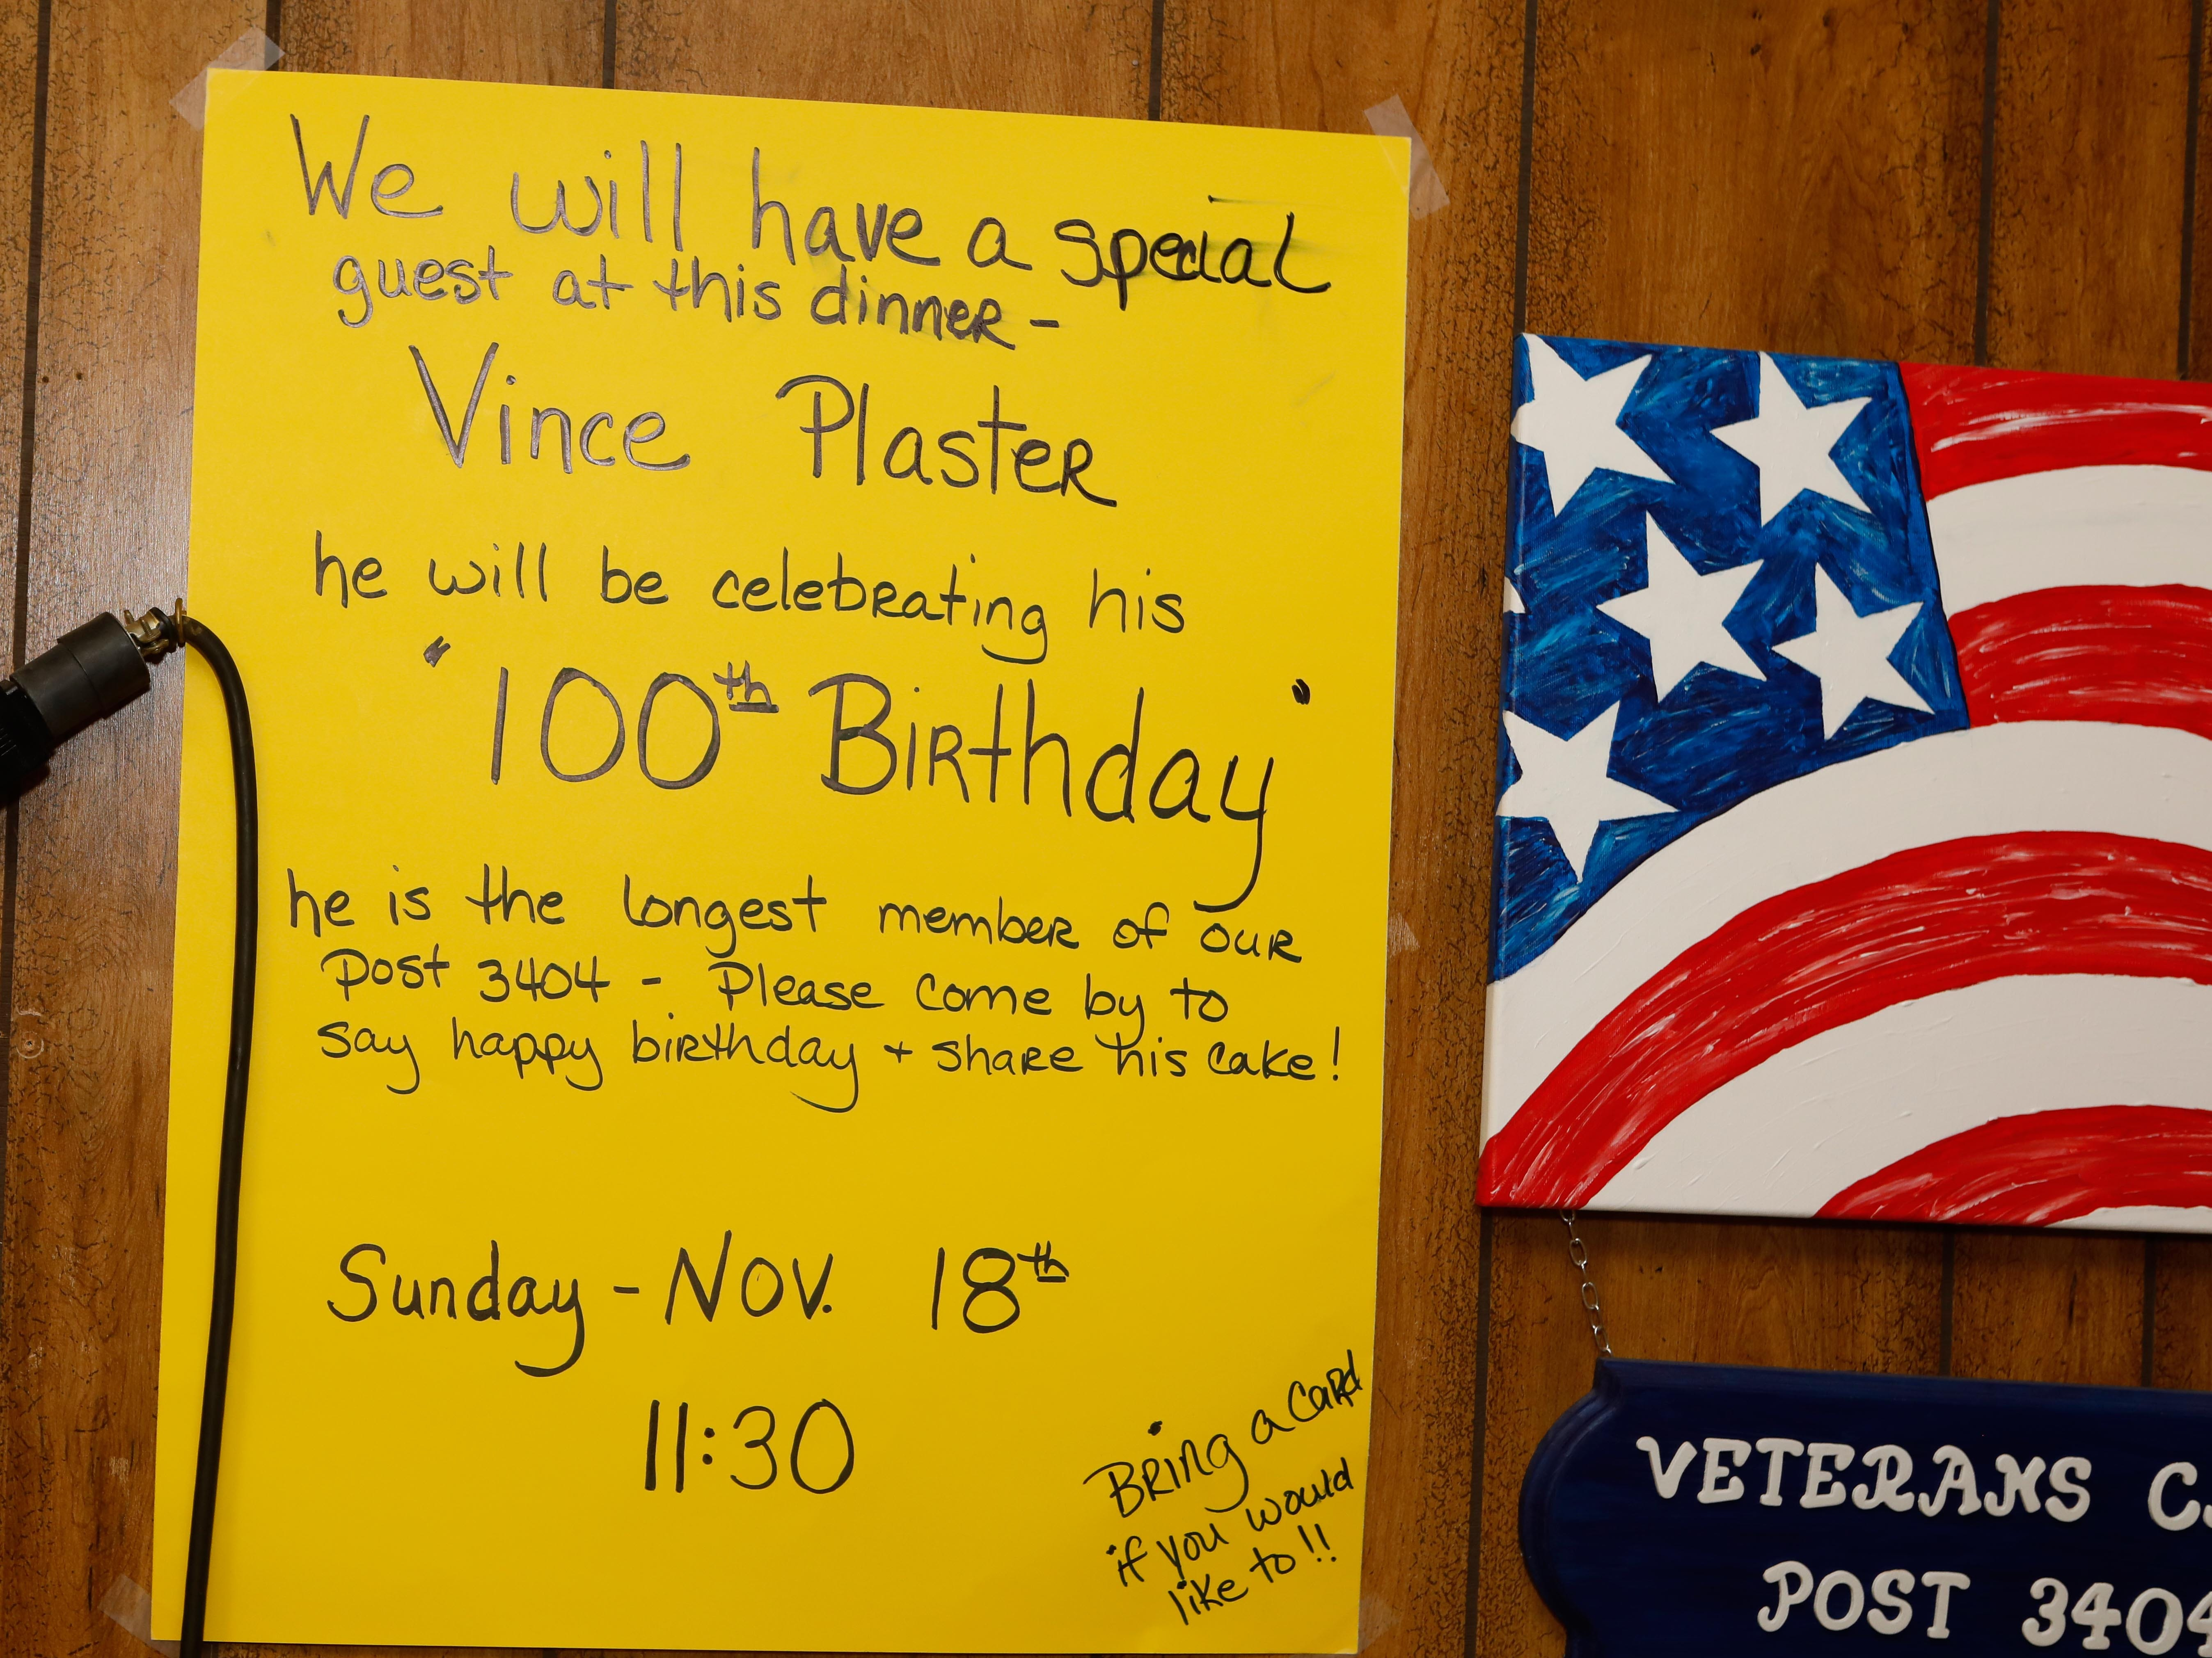 Vince Plaster, a WW ll veteran, was honored for his 100th birthday at VFW Post 3404's annual Thanksgiving dinner. A sign say he is the post's longest-serving member.